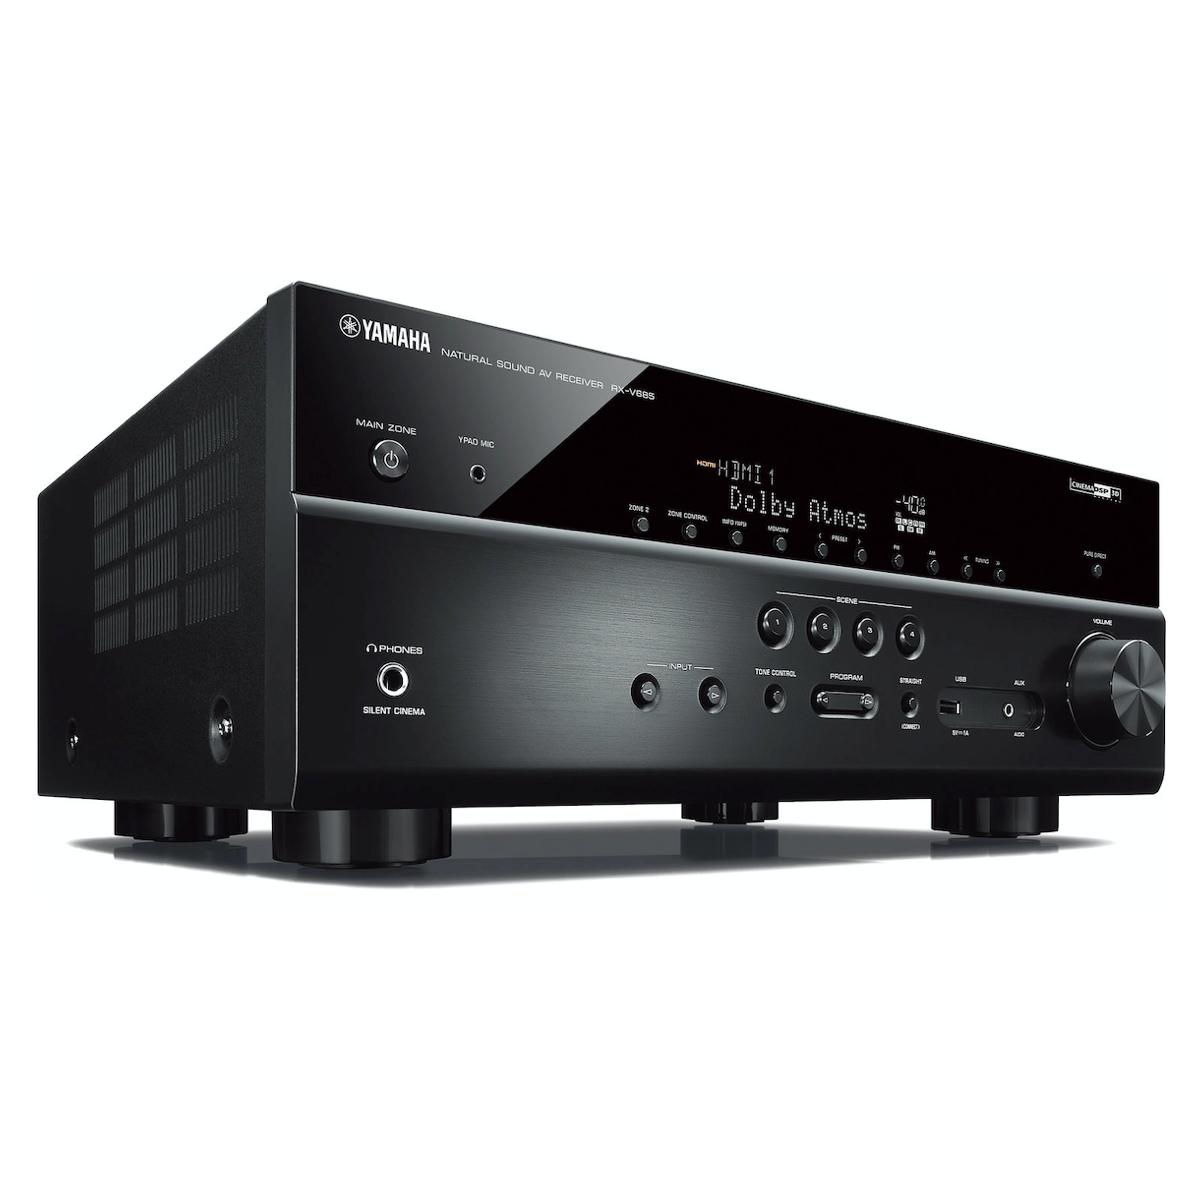 Yamaha RX-V685 - 7.2 Channel AV Receiver, Yamaha, AV Receiver - AVStore.in